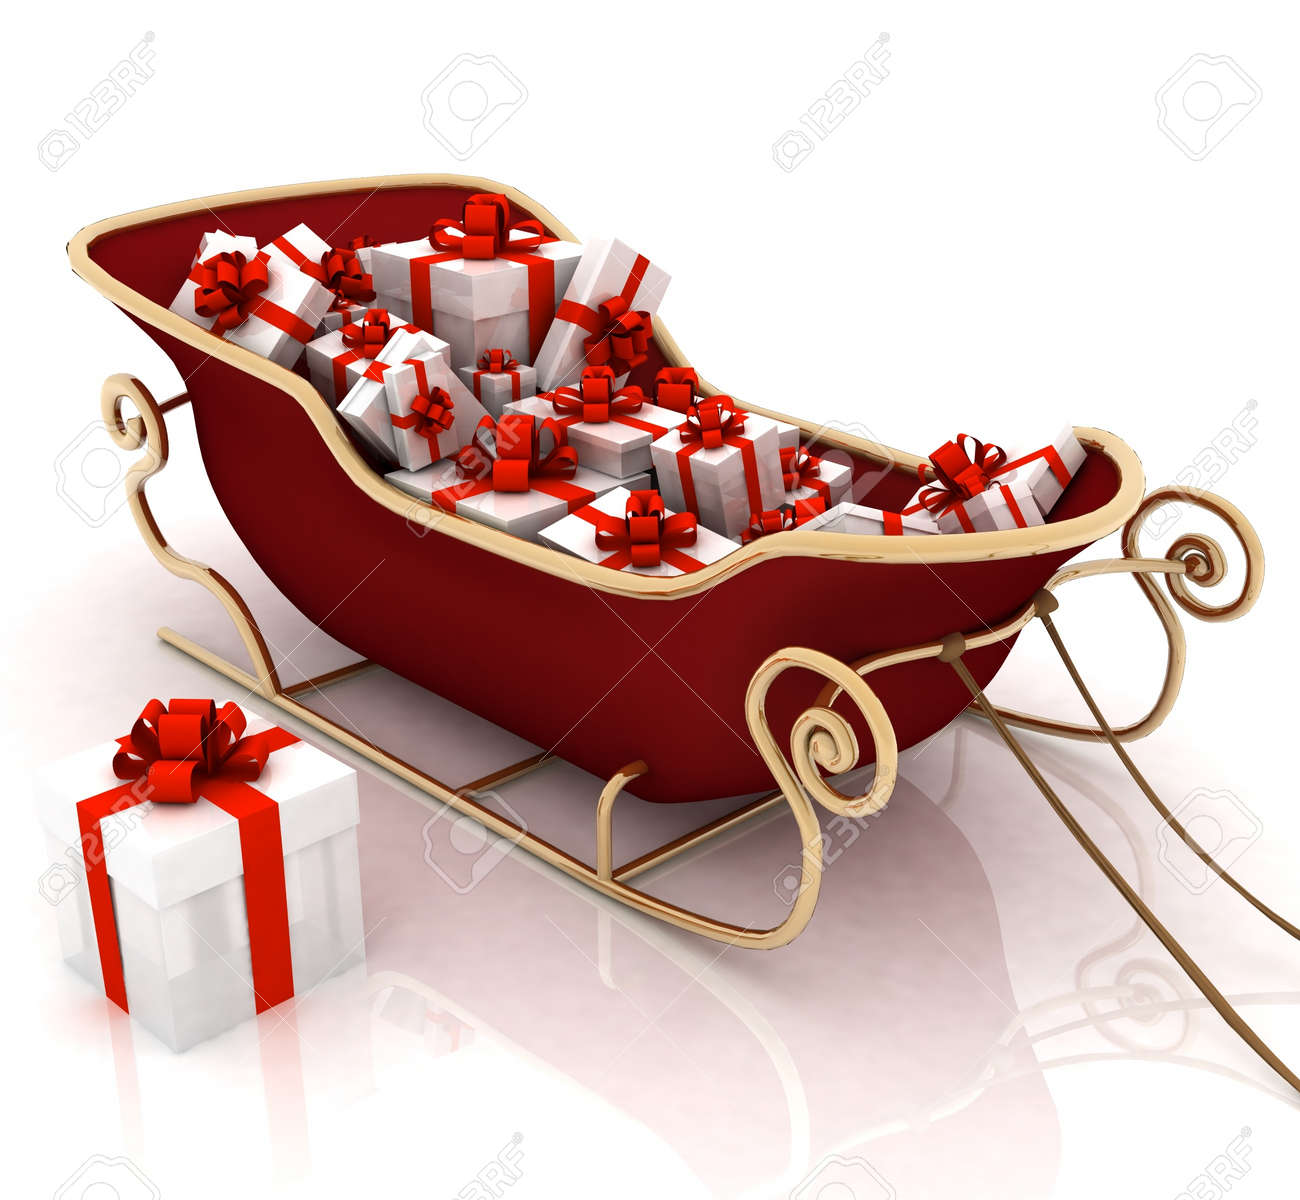 Christmas Santa sledge with gifts on a white background Stock Photo - 11846185